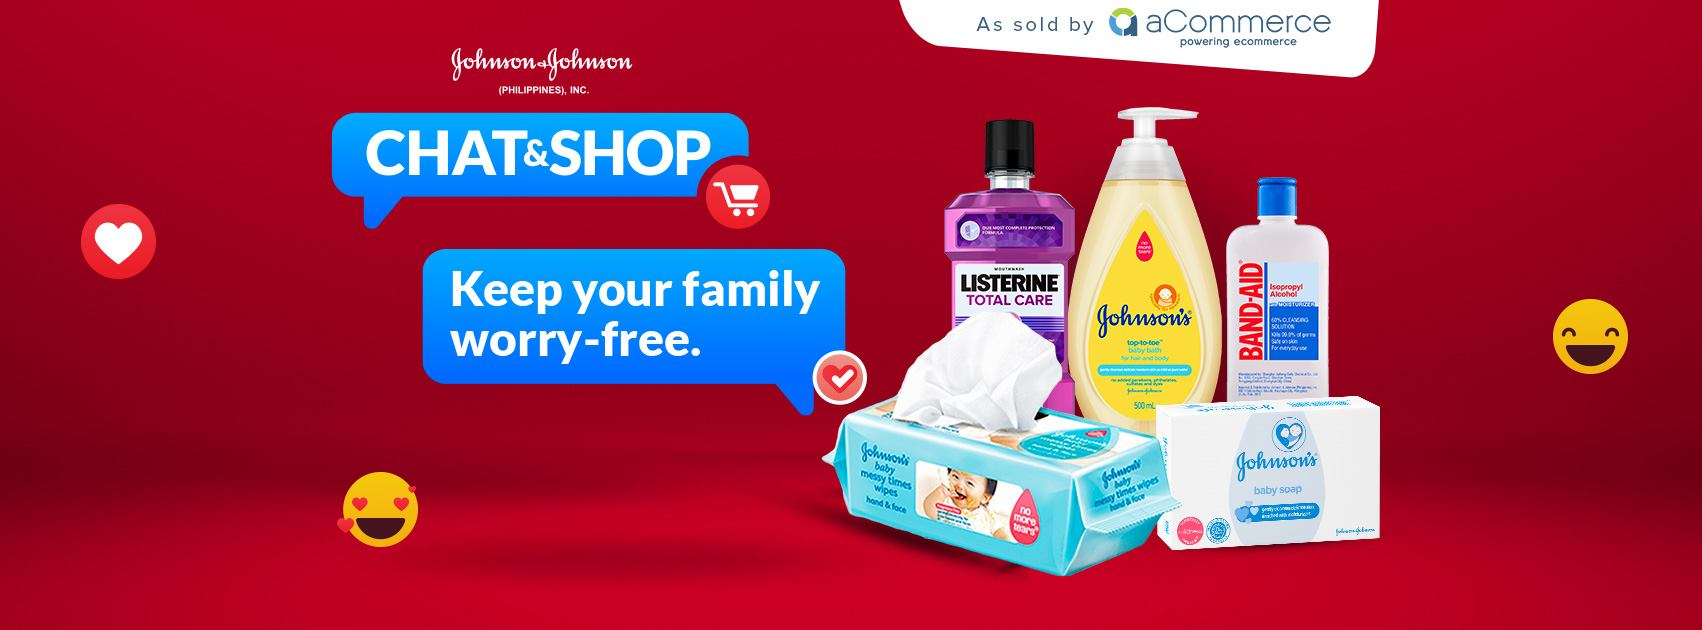 Shopping simplified with J&J PH Chat & Shop